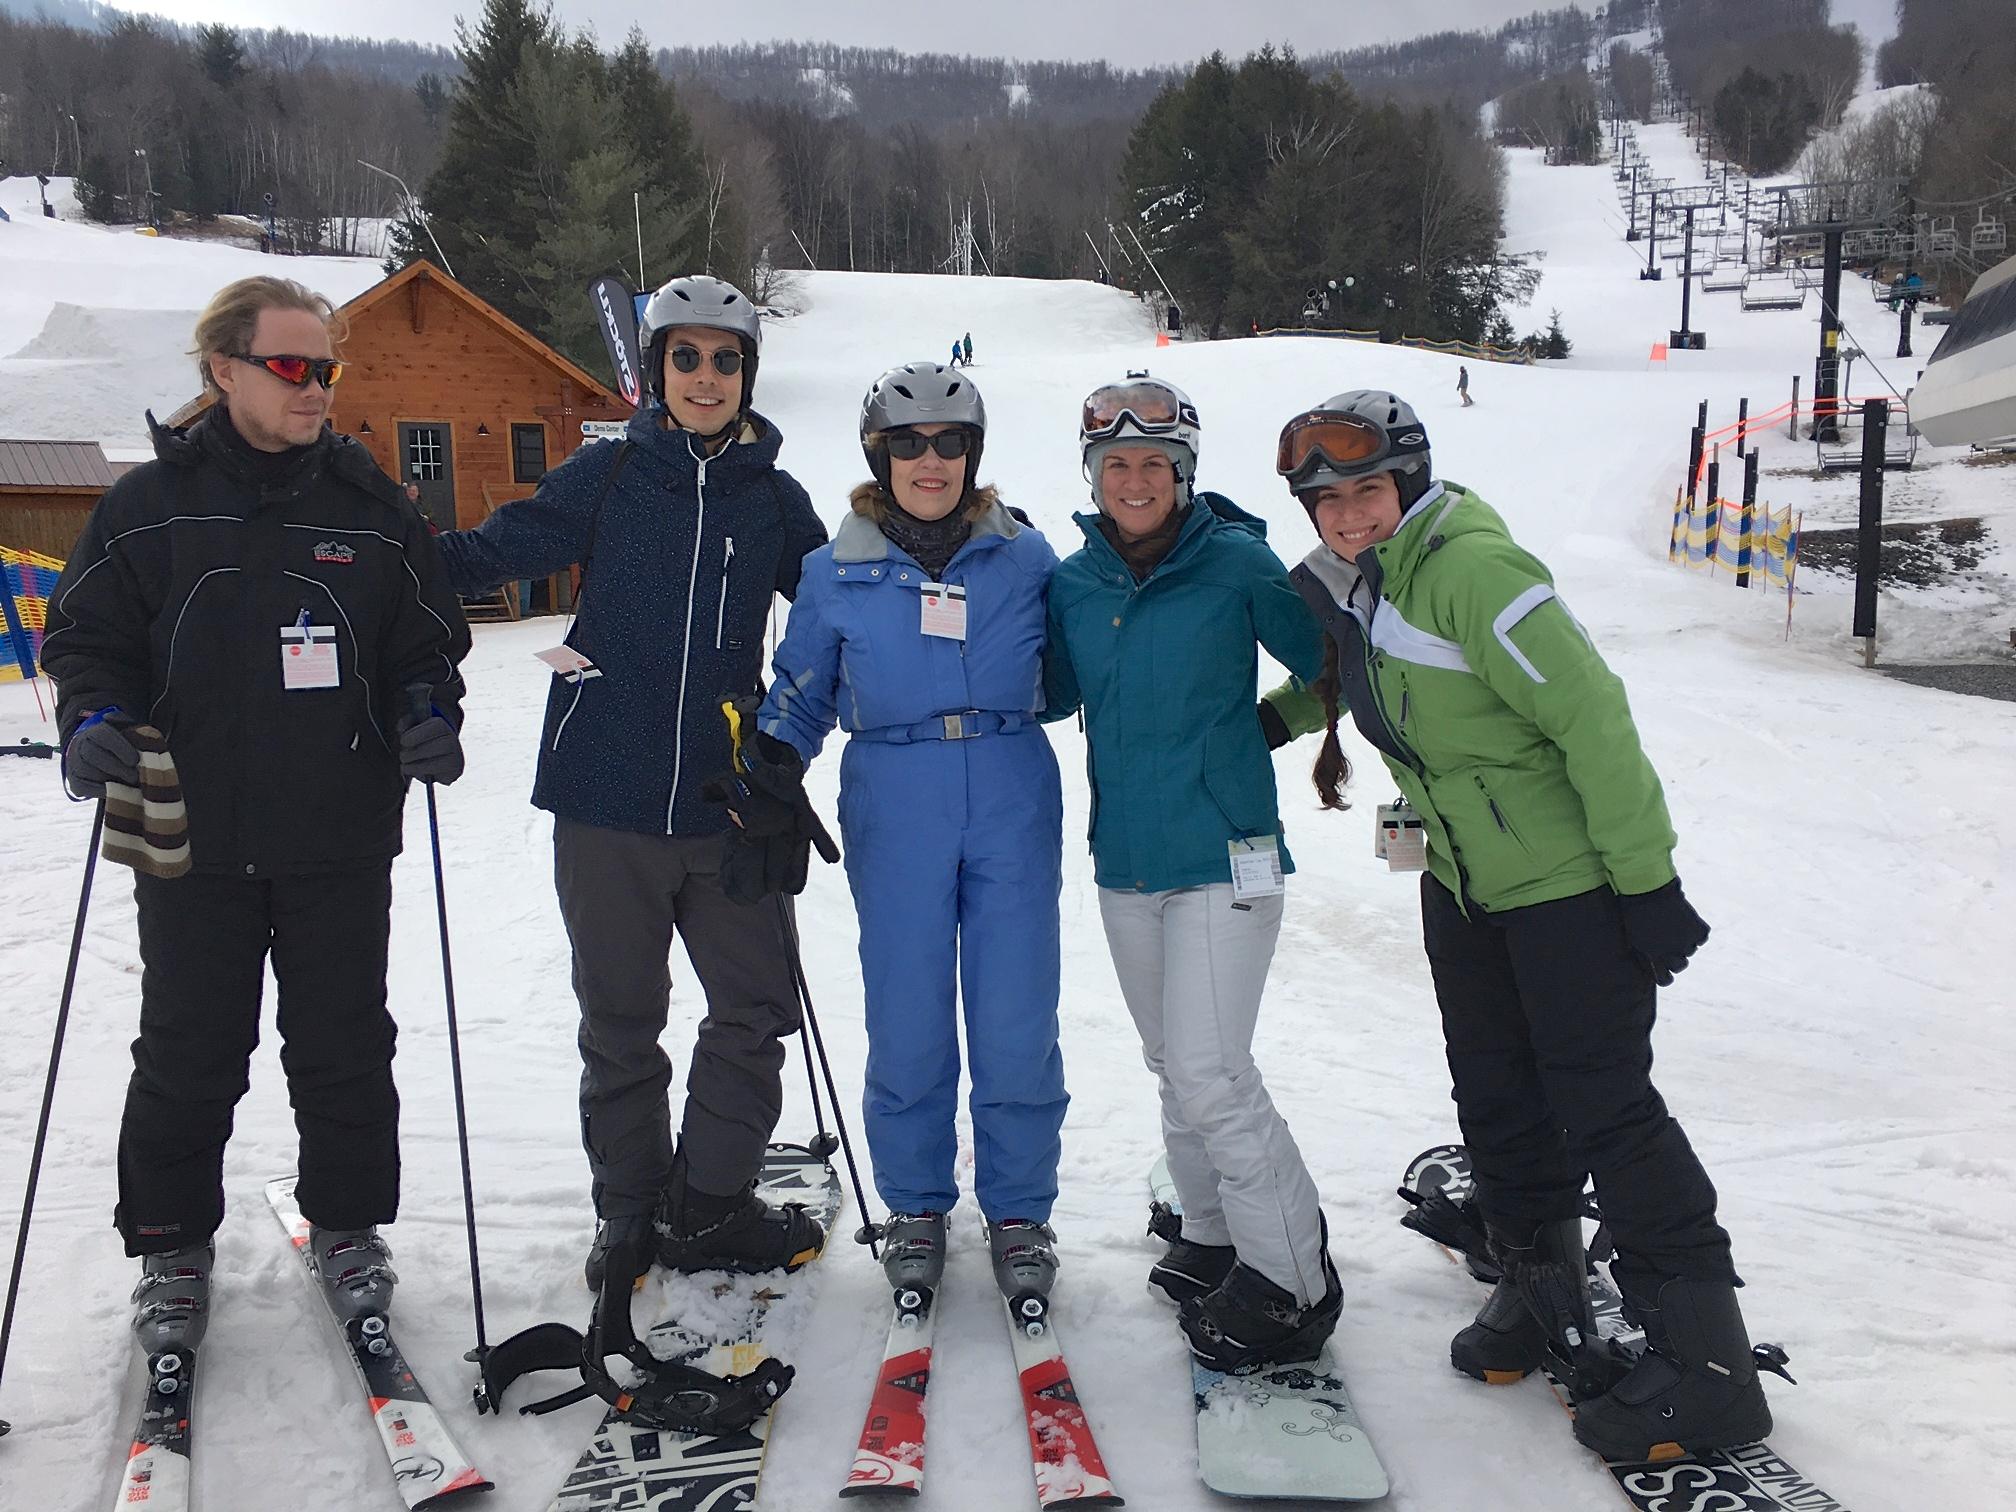 Kristian, Koen, Lorraine, Jocelin, Jackie, Feb. 14, 2018 skiing at Windham